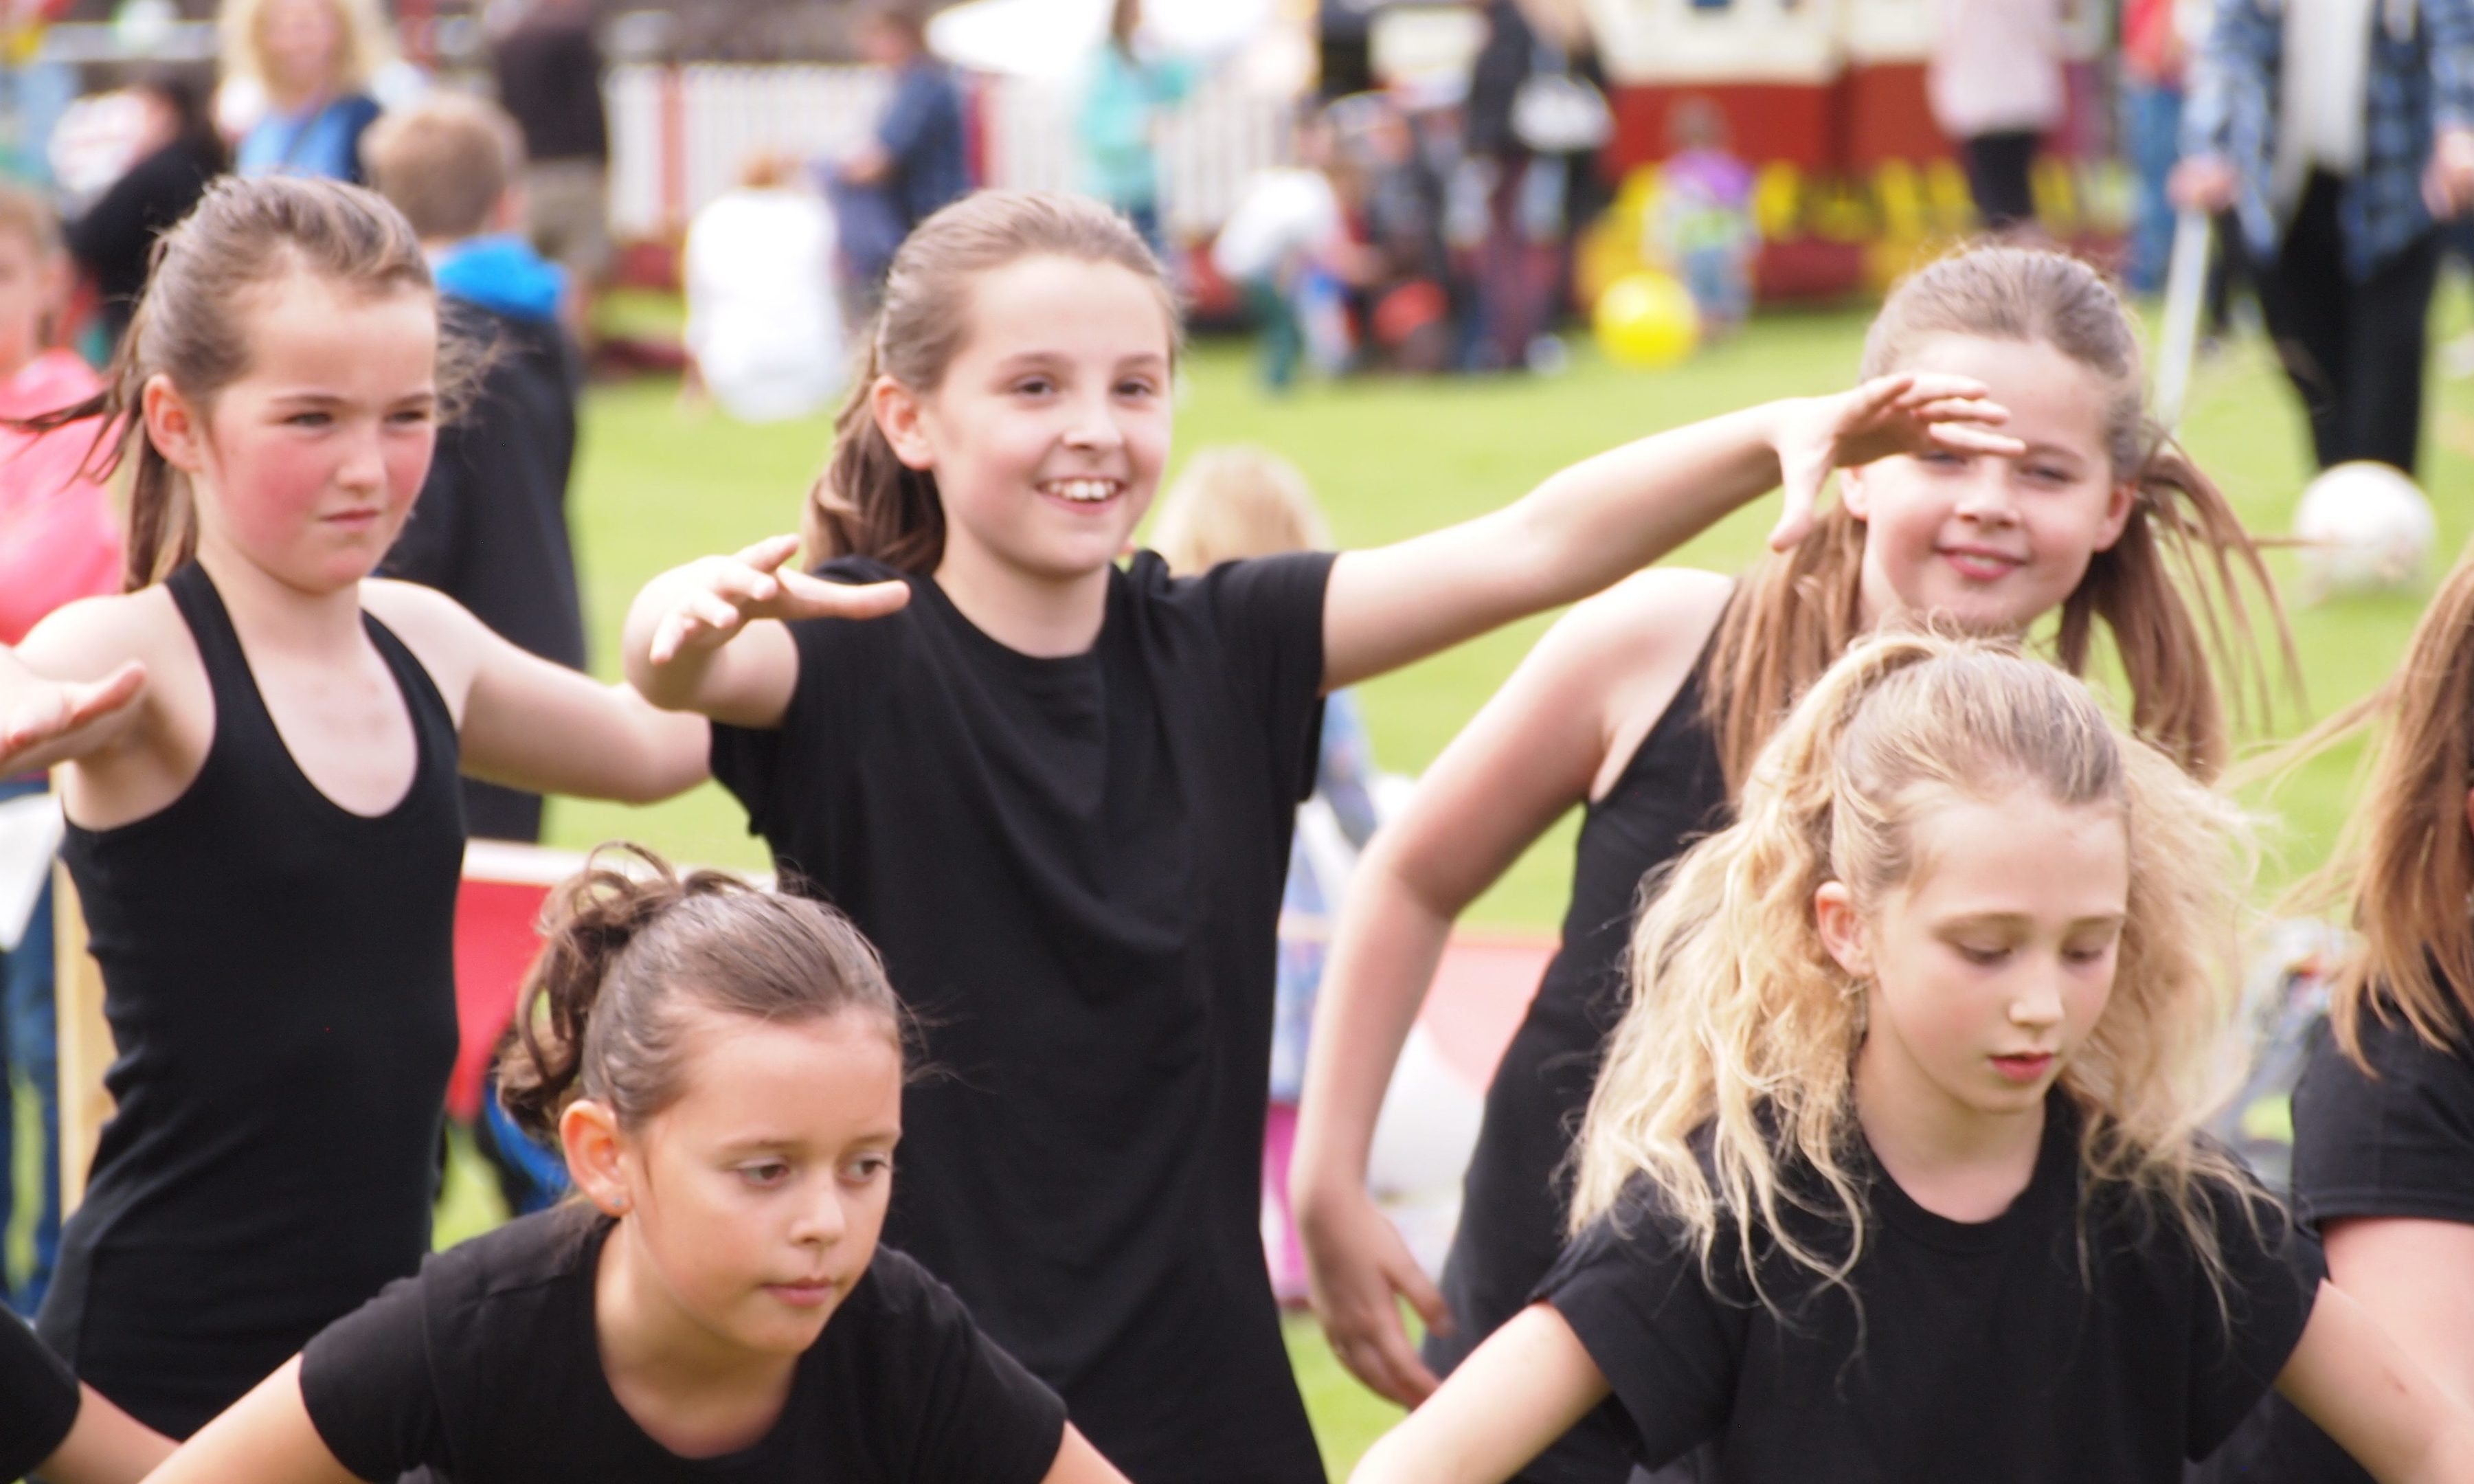 Dancers from Let's Dance in Blairgowrie at Coupar Angus gala.